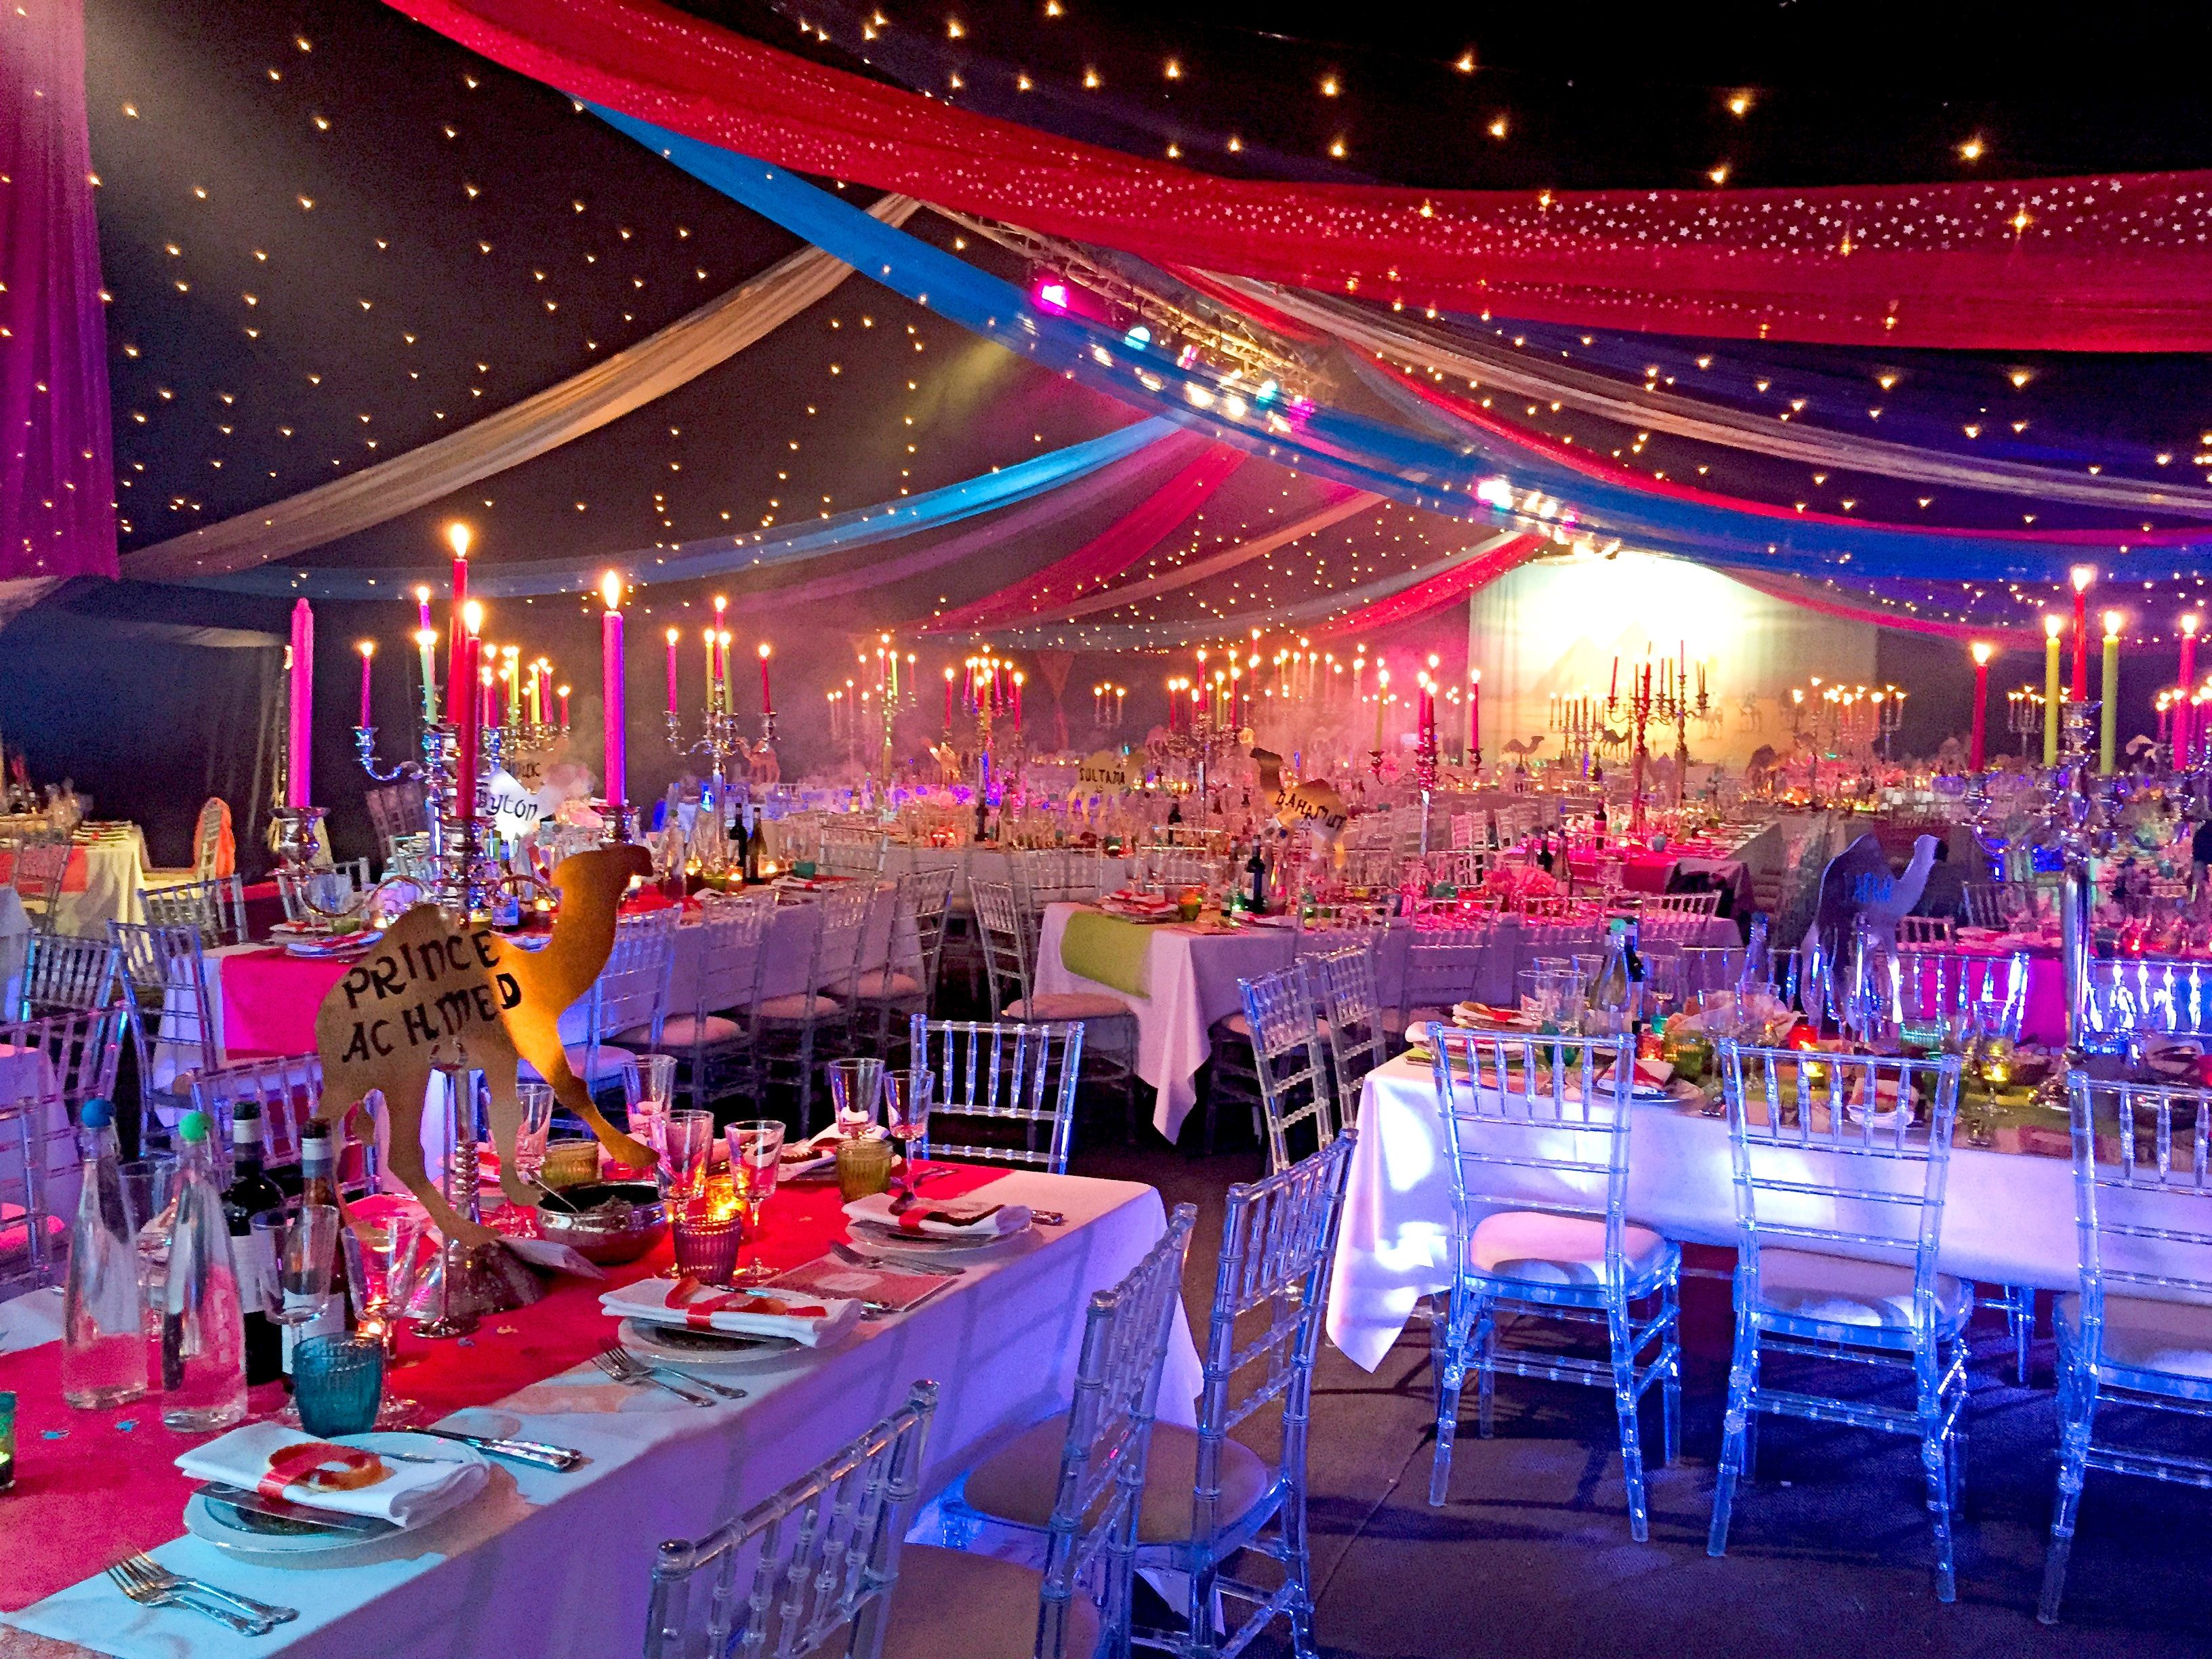 Bespoke party planners arabian nights theme charity ball for Arabian nights decoration ideas